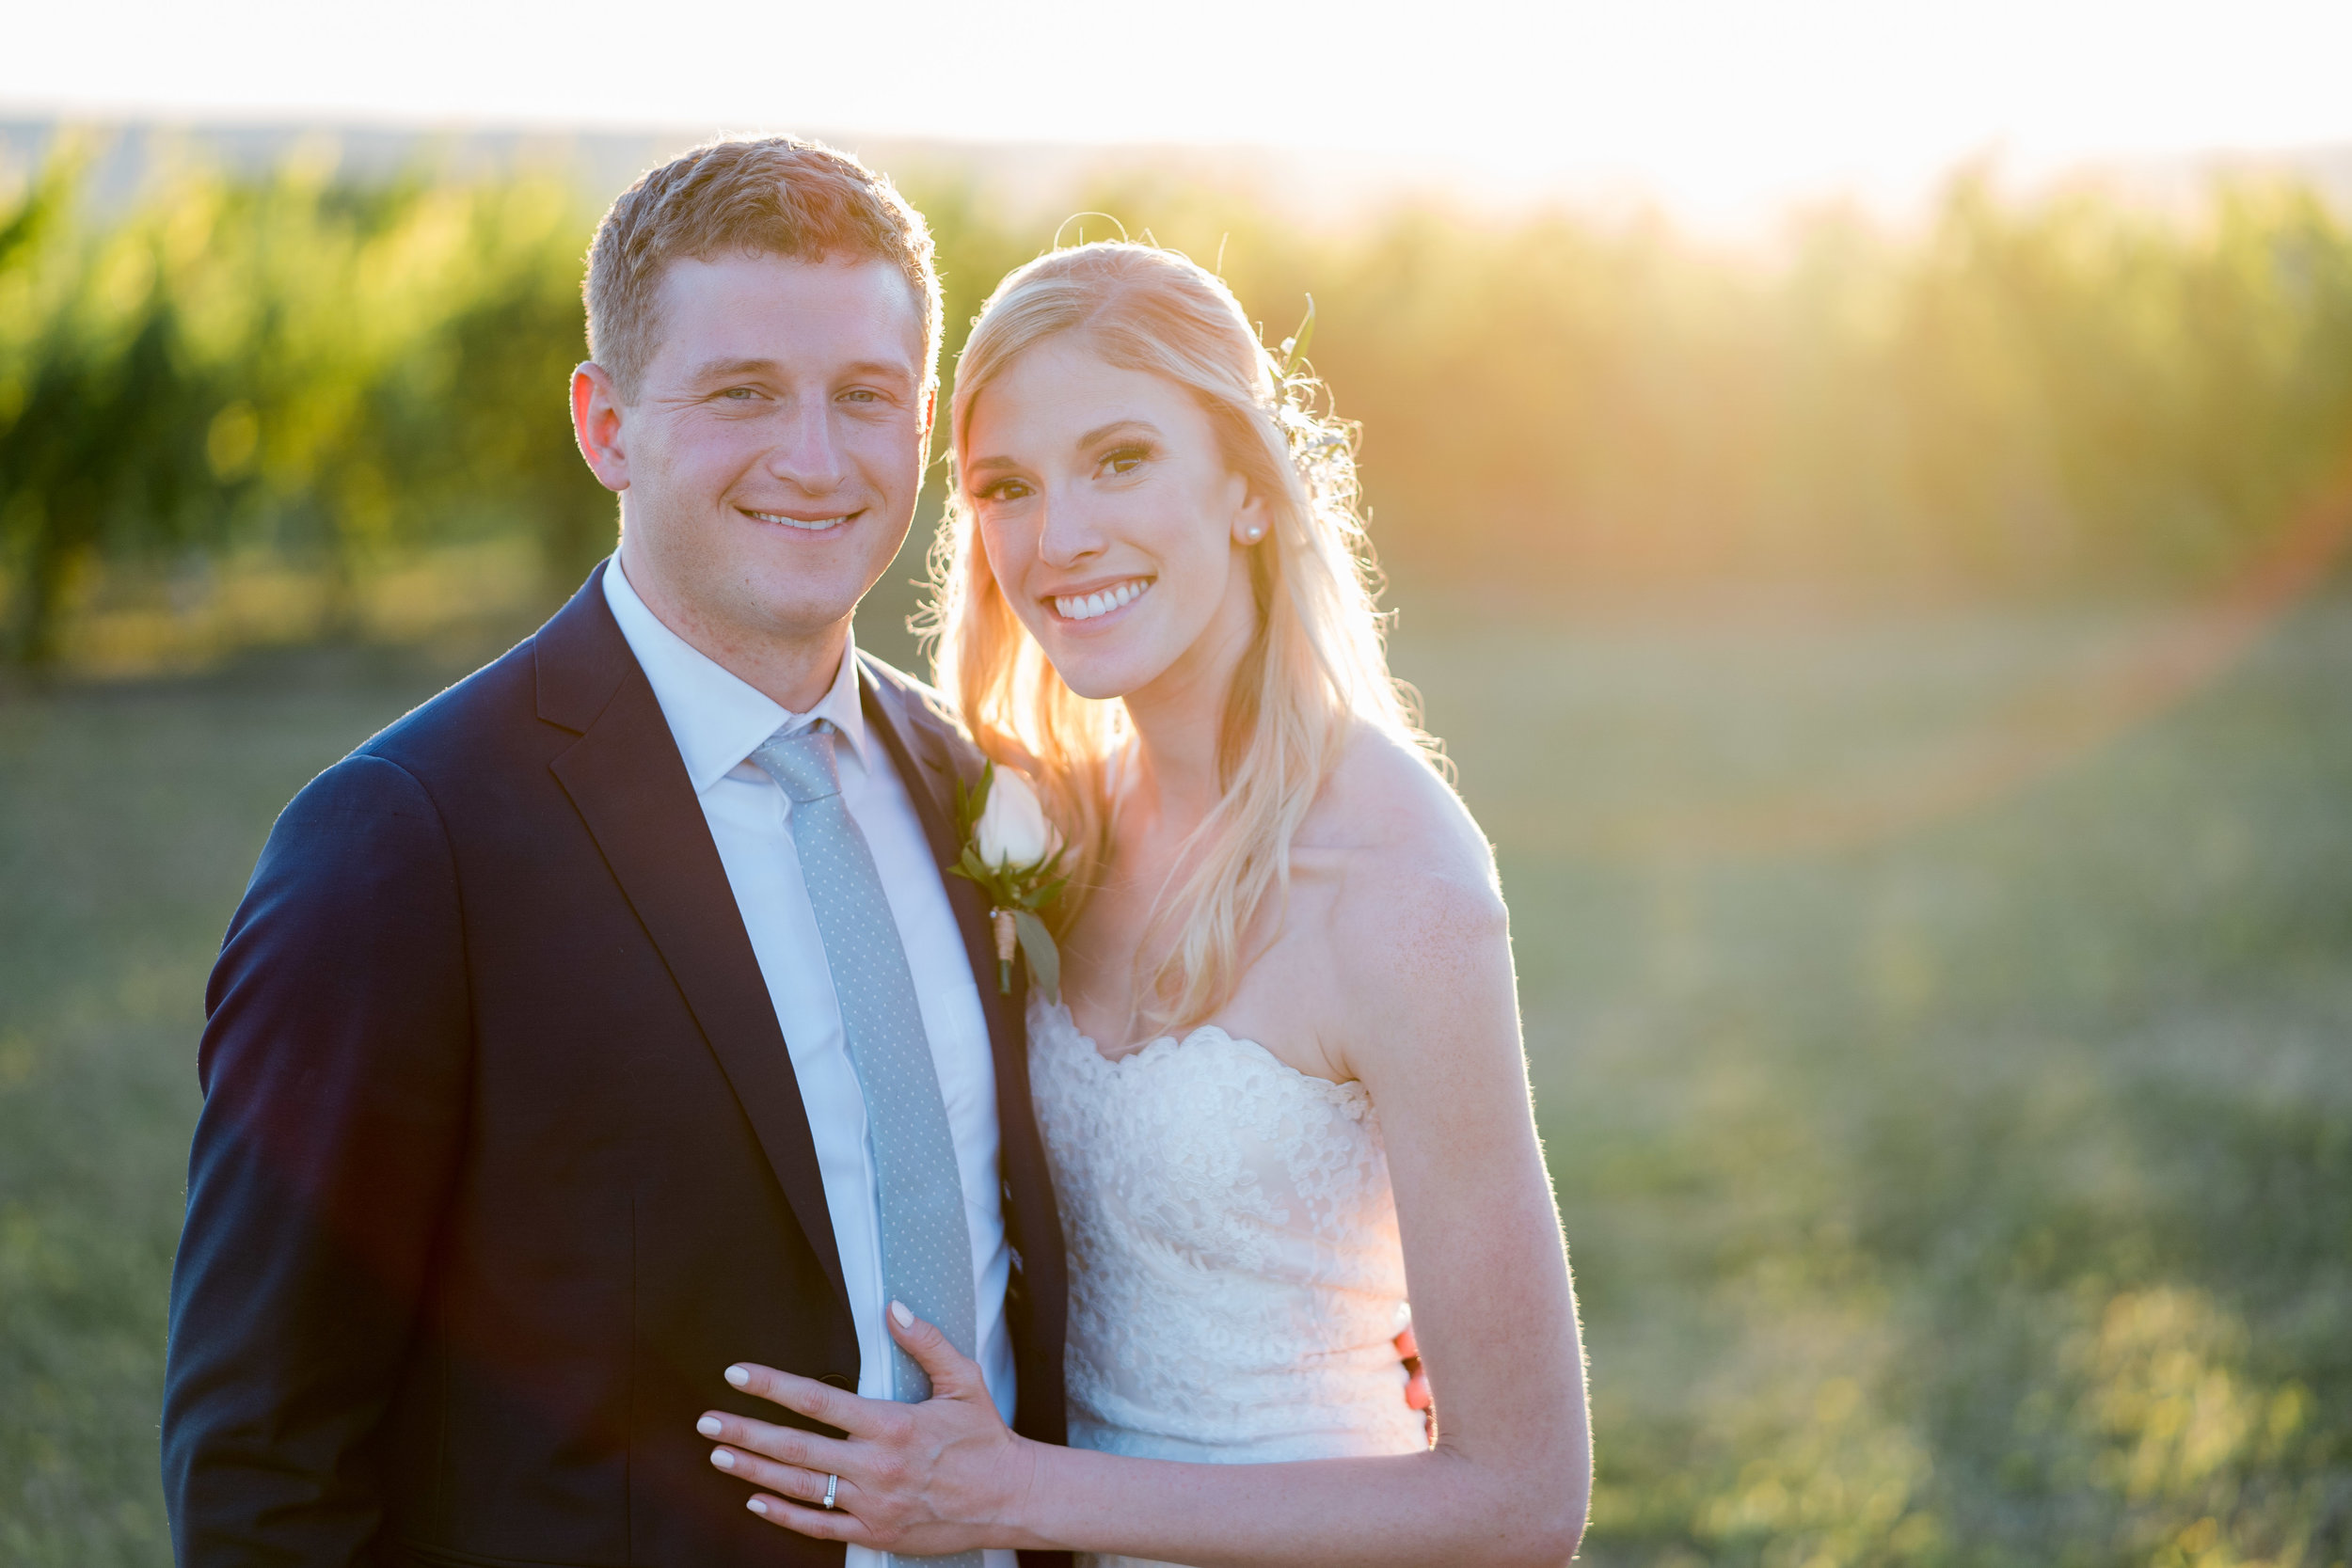 Wedding Photography at Wagner Vineyards Ginny Lee Cafe Finger Lakes by Stefan Ludwig Photography-84.jpg